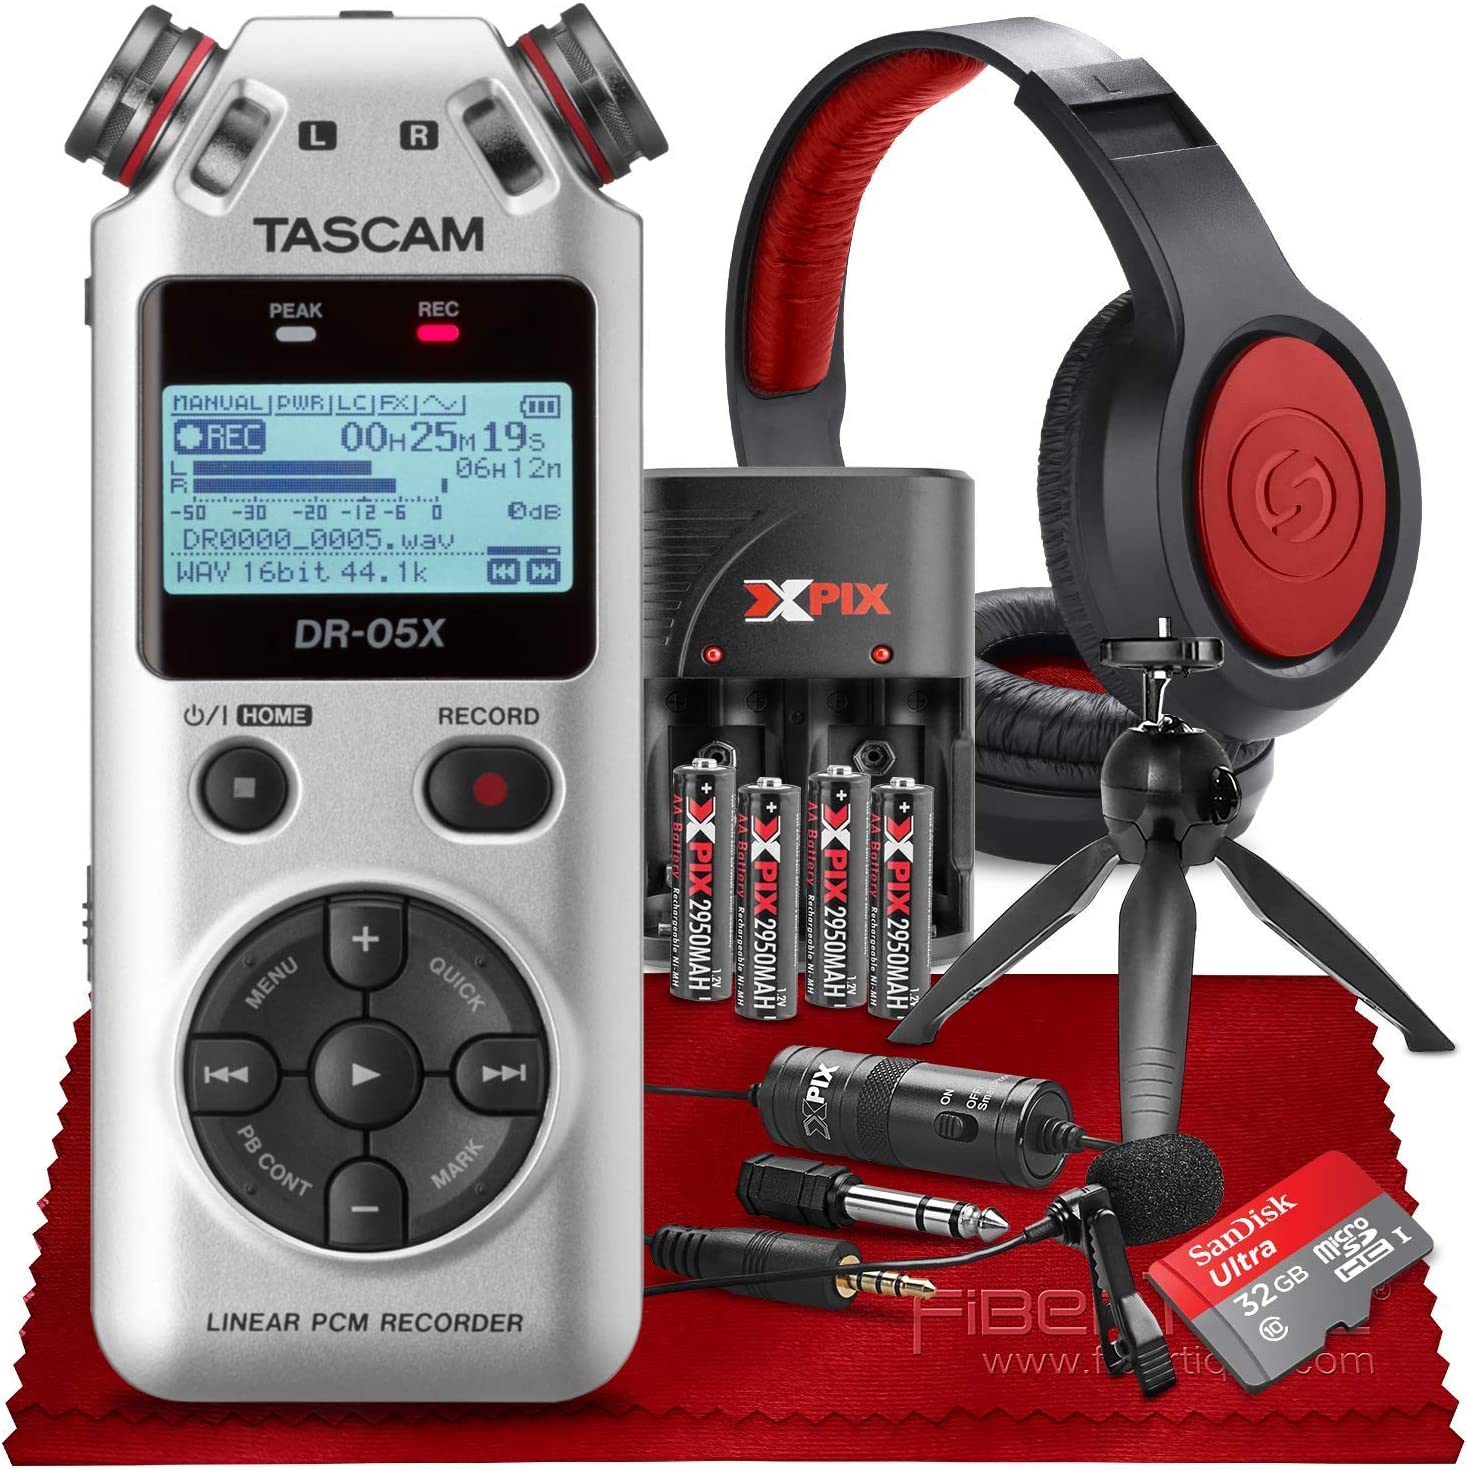 Tascam DR-05X Stereo Handheld Digital Audio Recorder with USB Audio Interface 32GB Memory Card + SR360 Stereo Headphones Xpix Lavalier Microphone Tripod /& Xpix AA Batteries W//Charger Silver